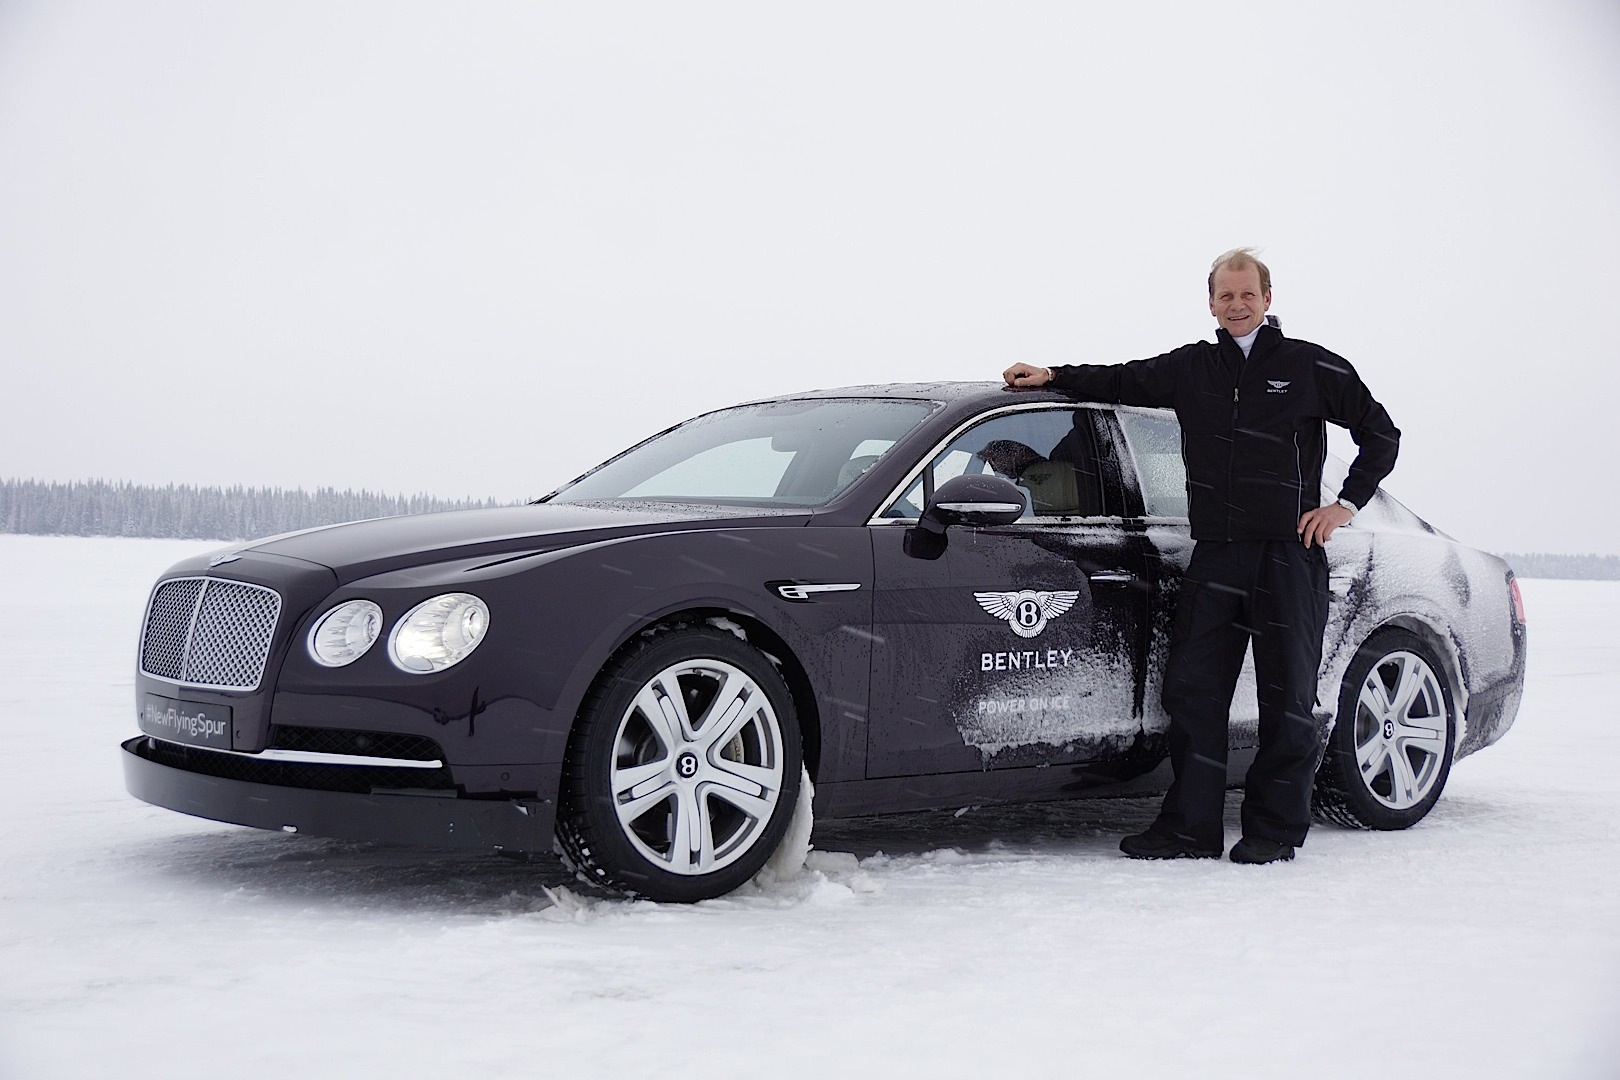 Bentley coupon 2018